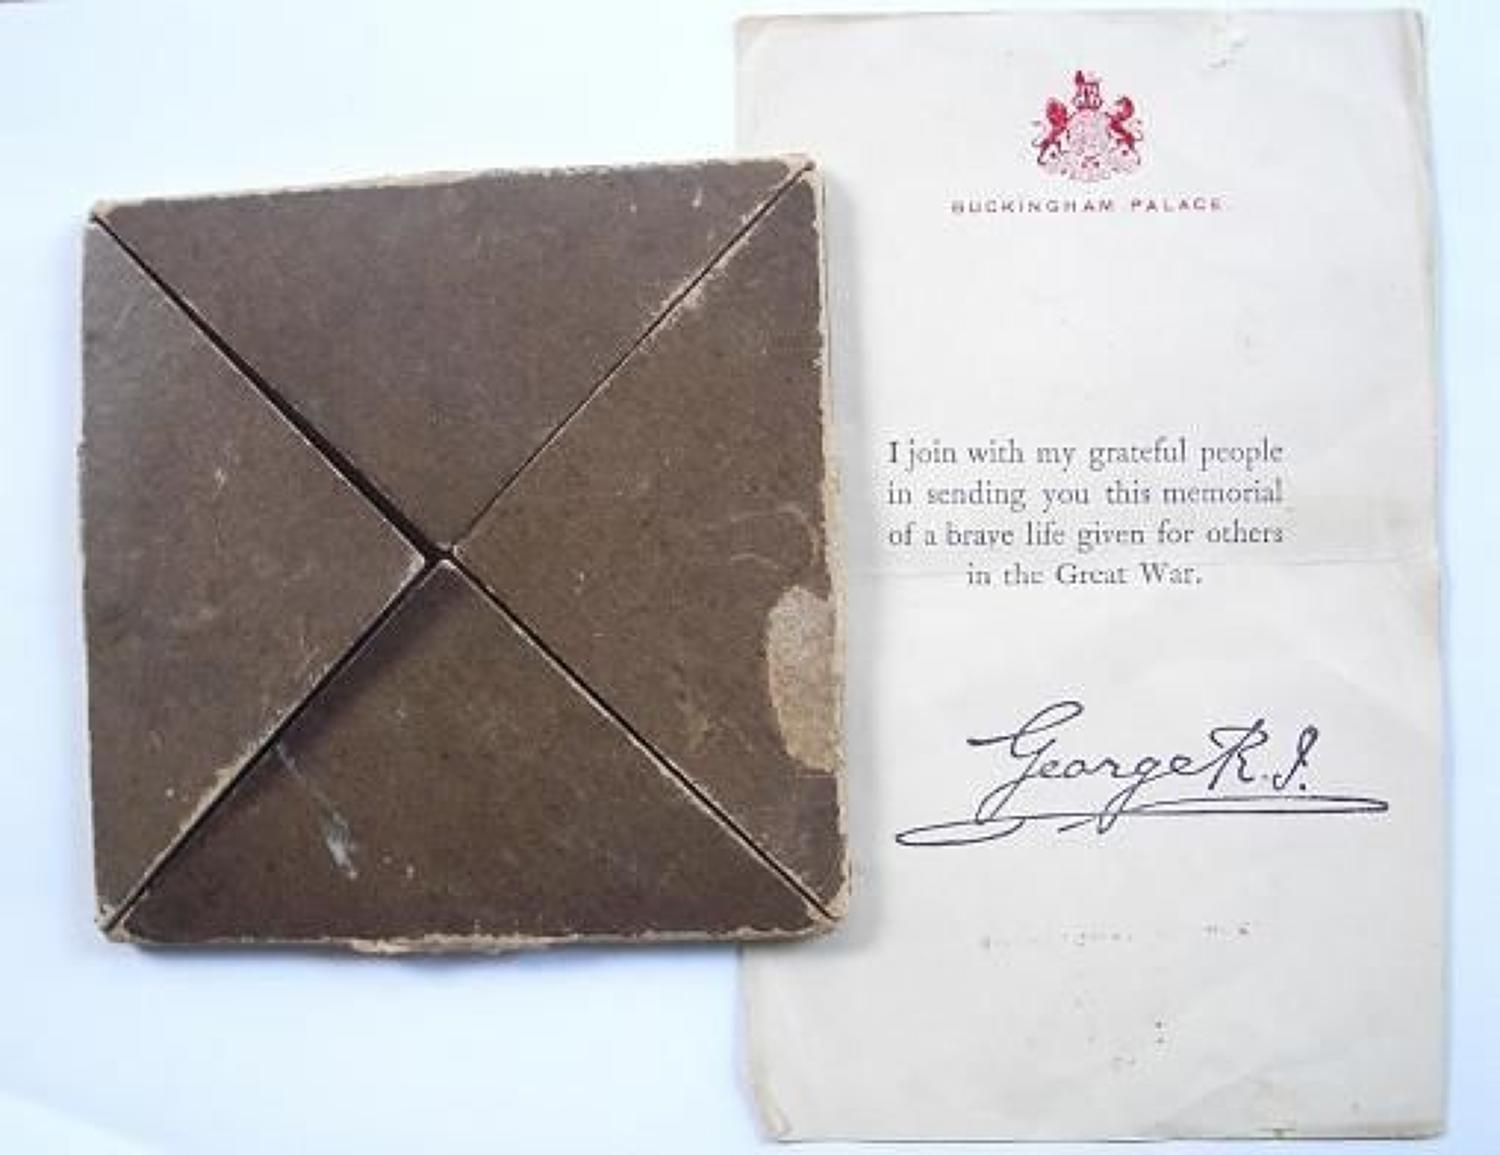 WW1 Memorial Plaque Card Envelope & Buckingham Palace Letter.